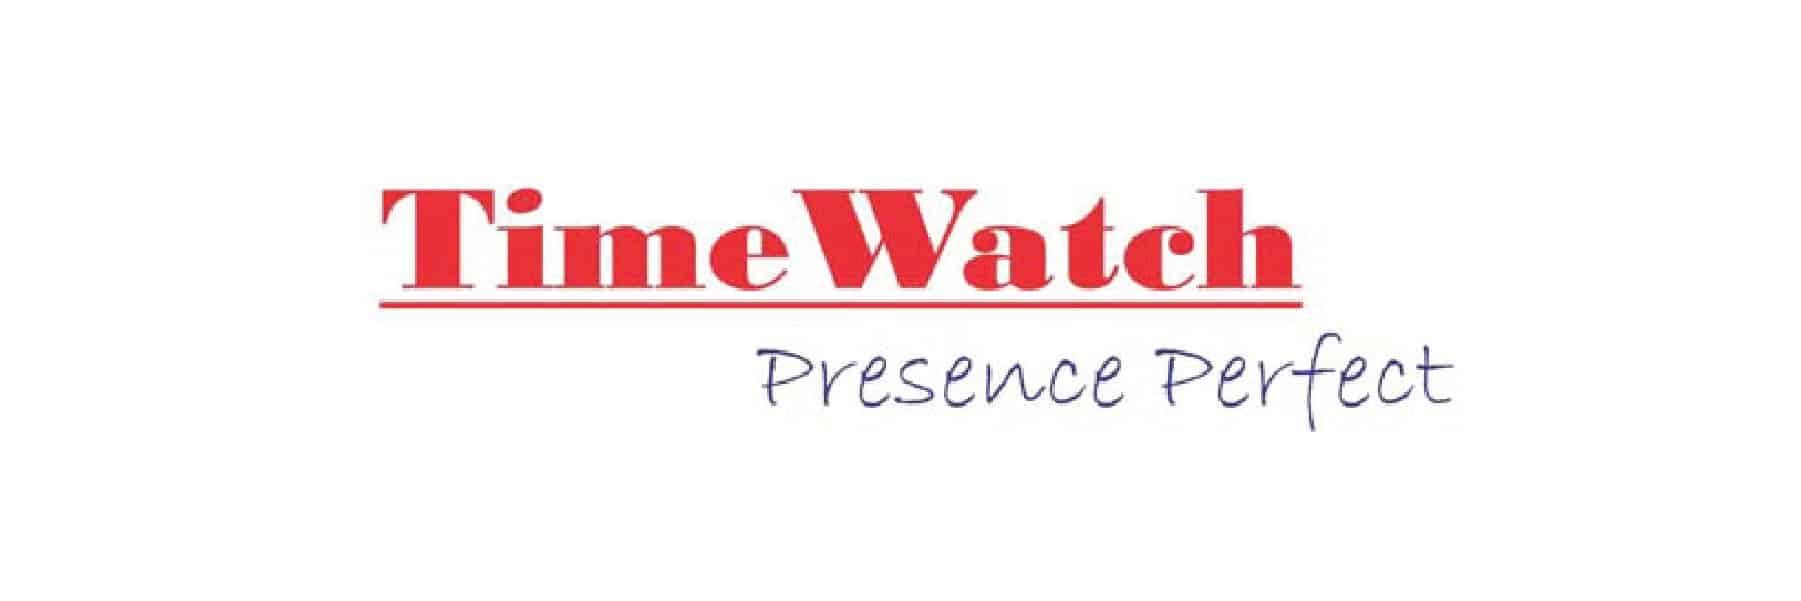 time watch presence perfect